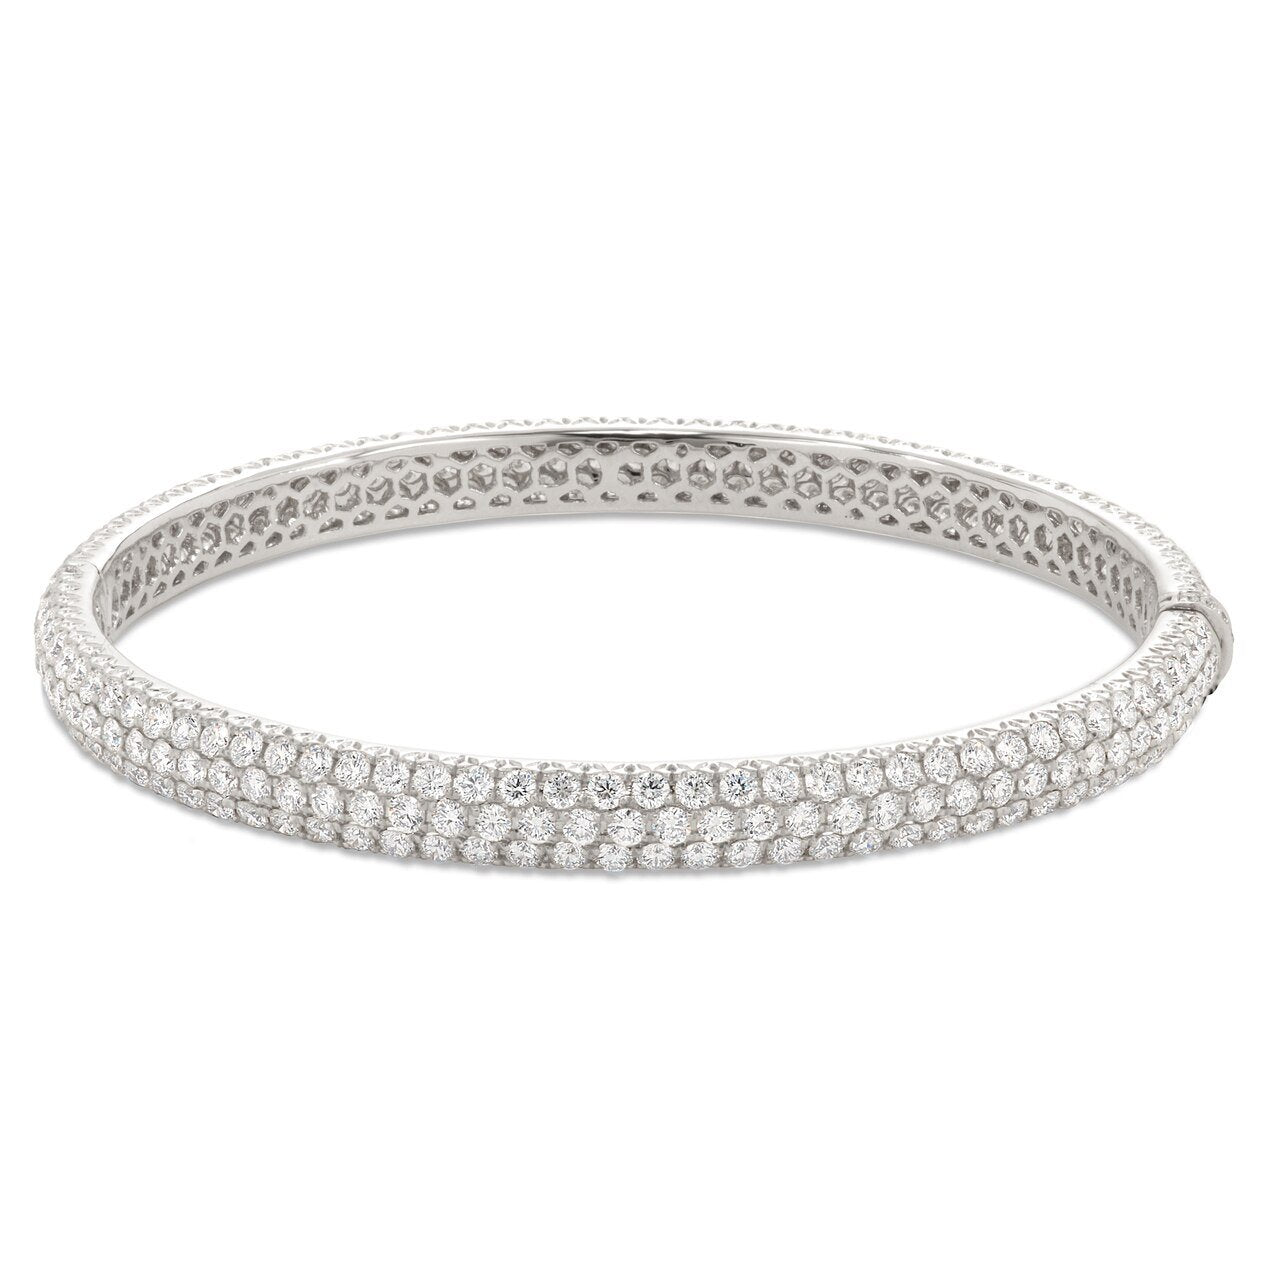 Three Row Pave Diamond Bangle